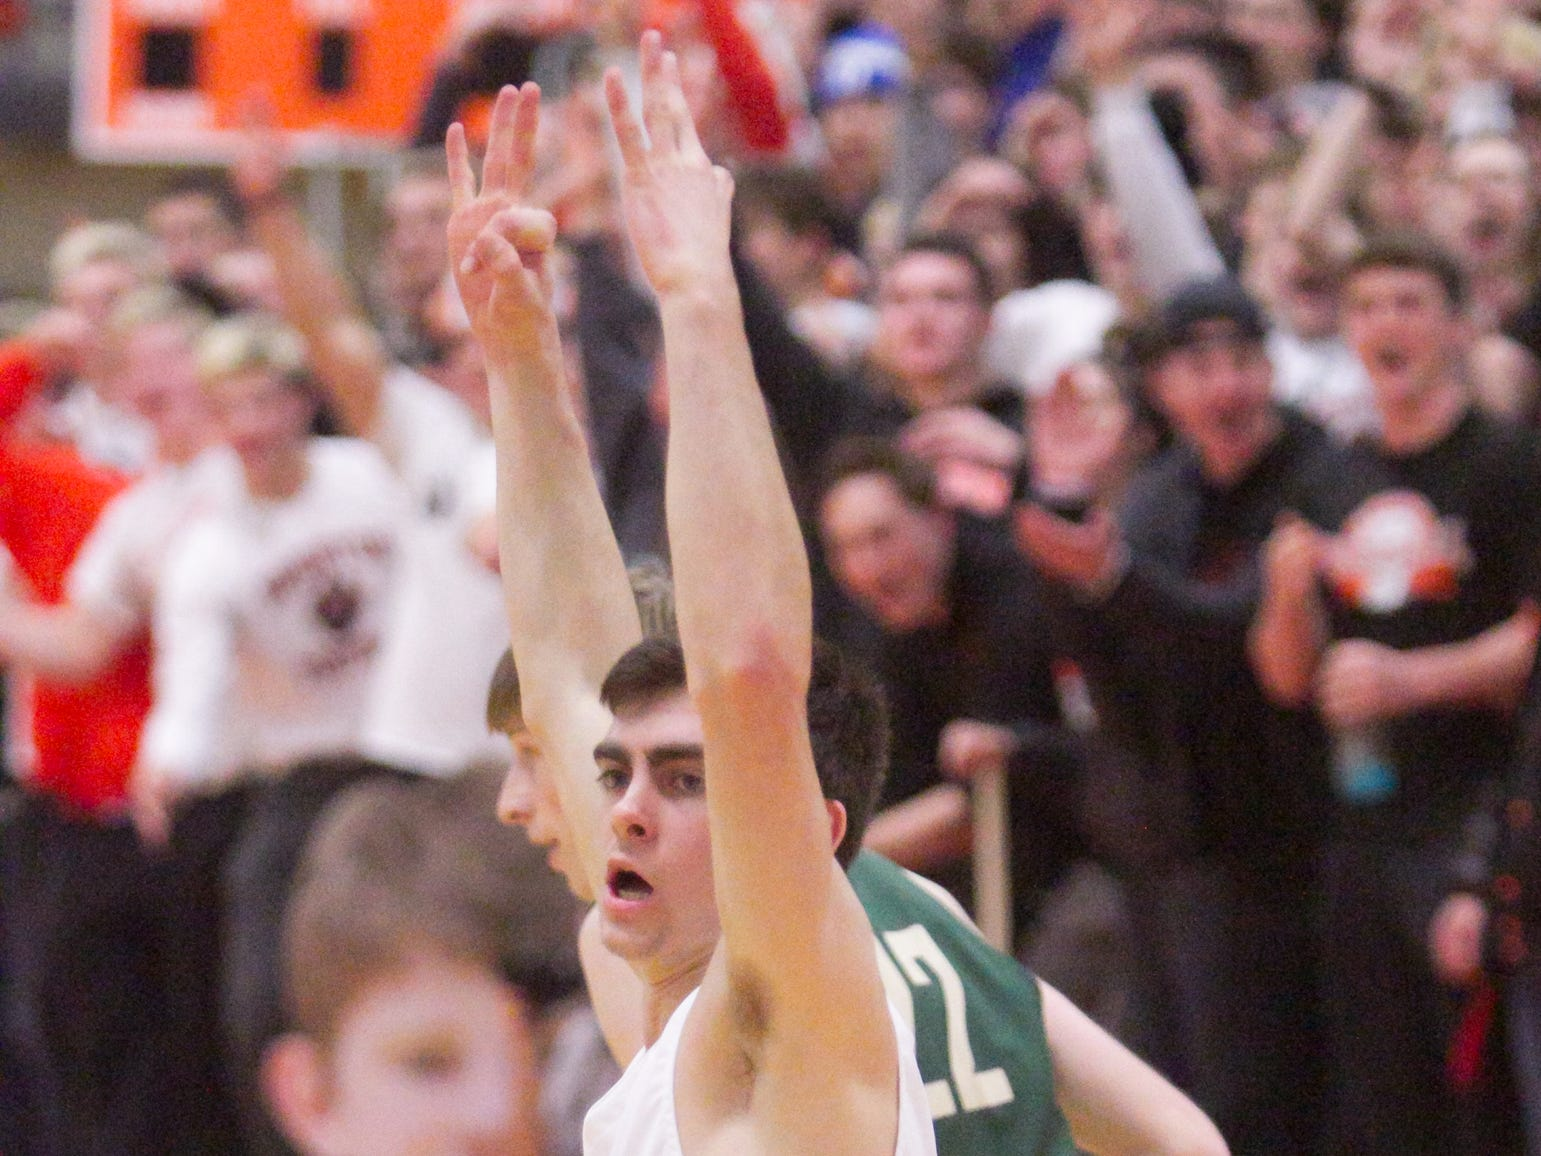 Brighton's Nolan Ehman celebrates his three-pointer, putting the Bulldogs on the scoreboard in the first quarter of the game against Howell Tuesday, Jan. 8, 2019.